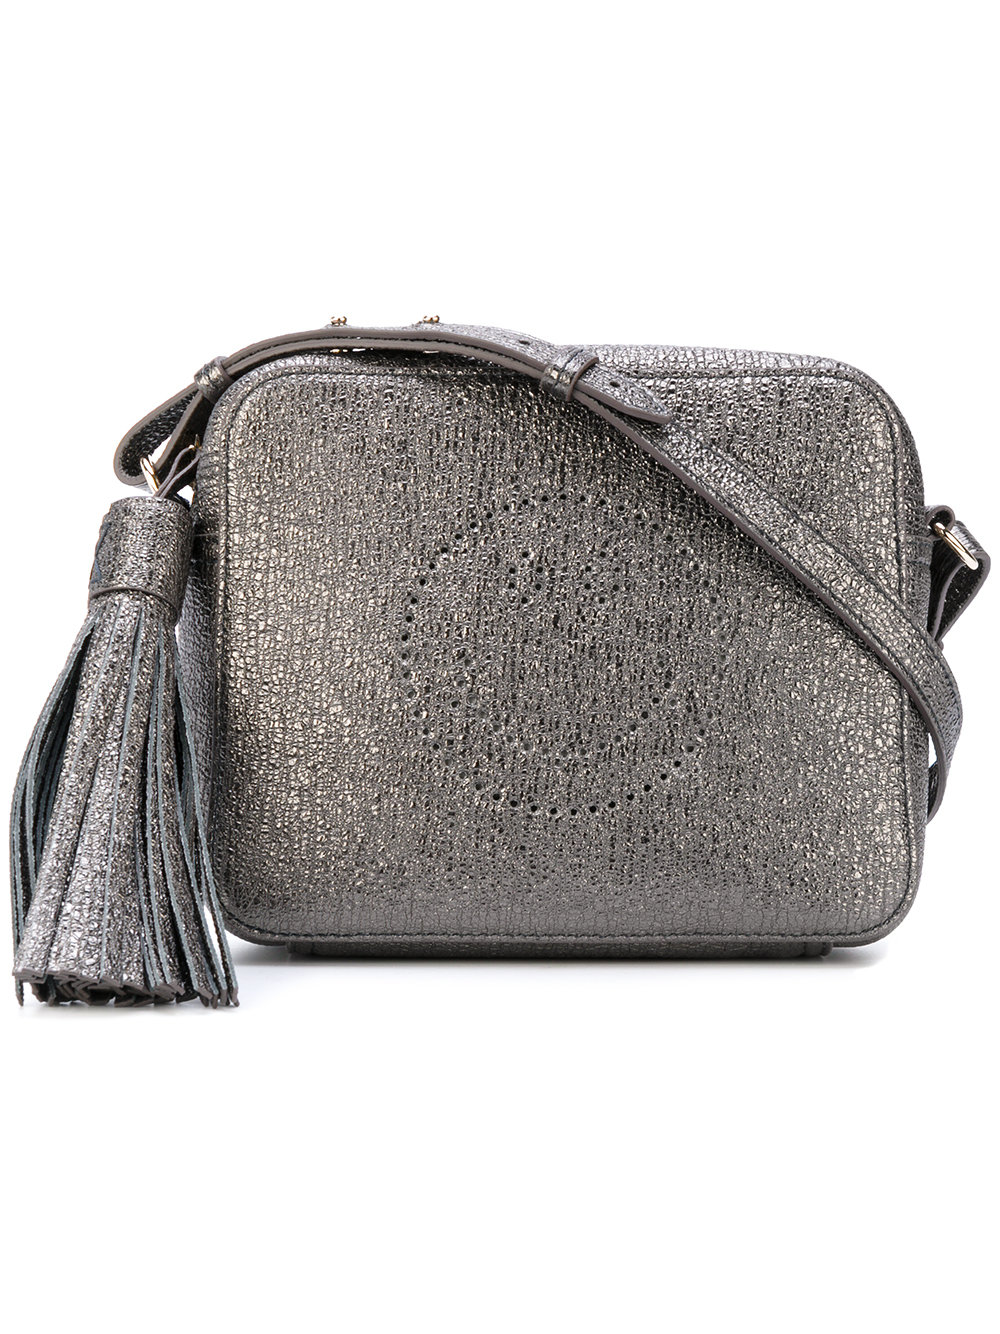 ANYA HINDMARCH crossbody - $750